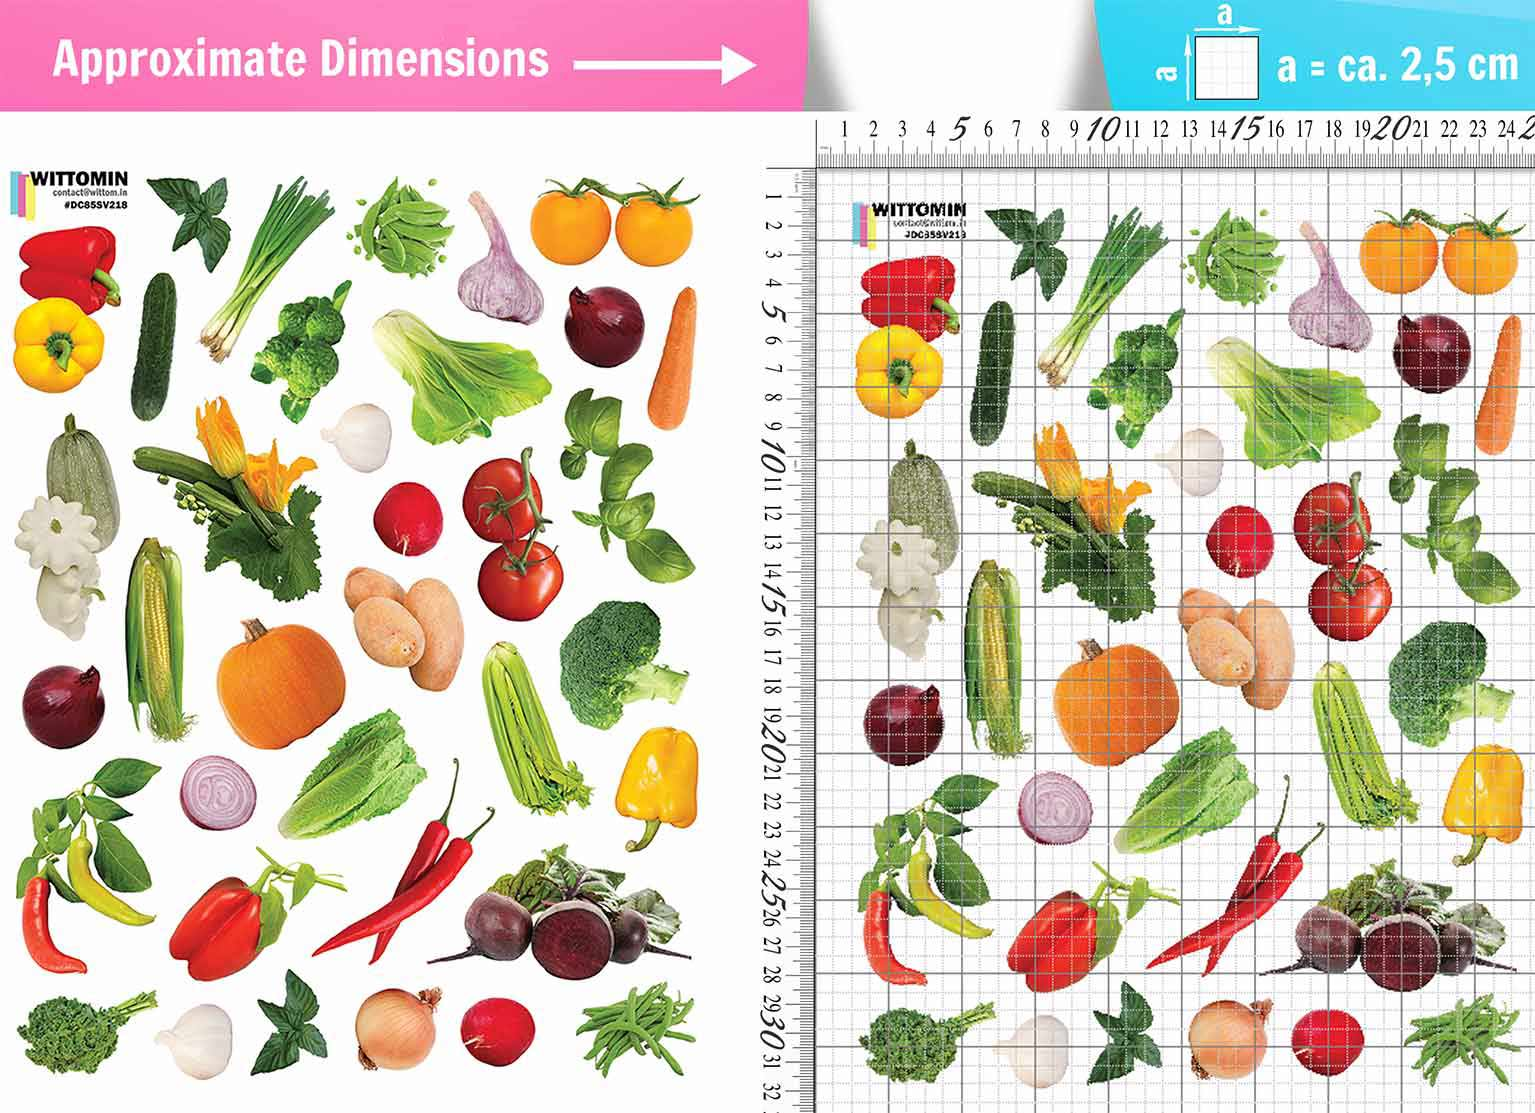 Small vegetables, tomatoes sticker set from Wittomin